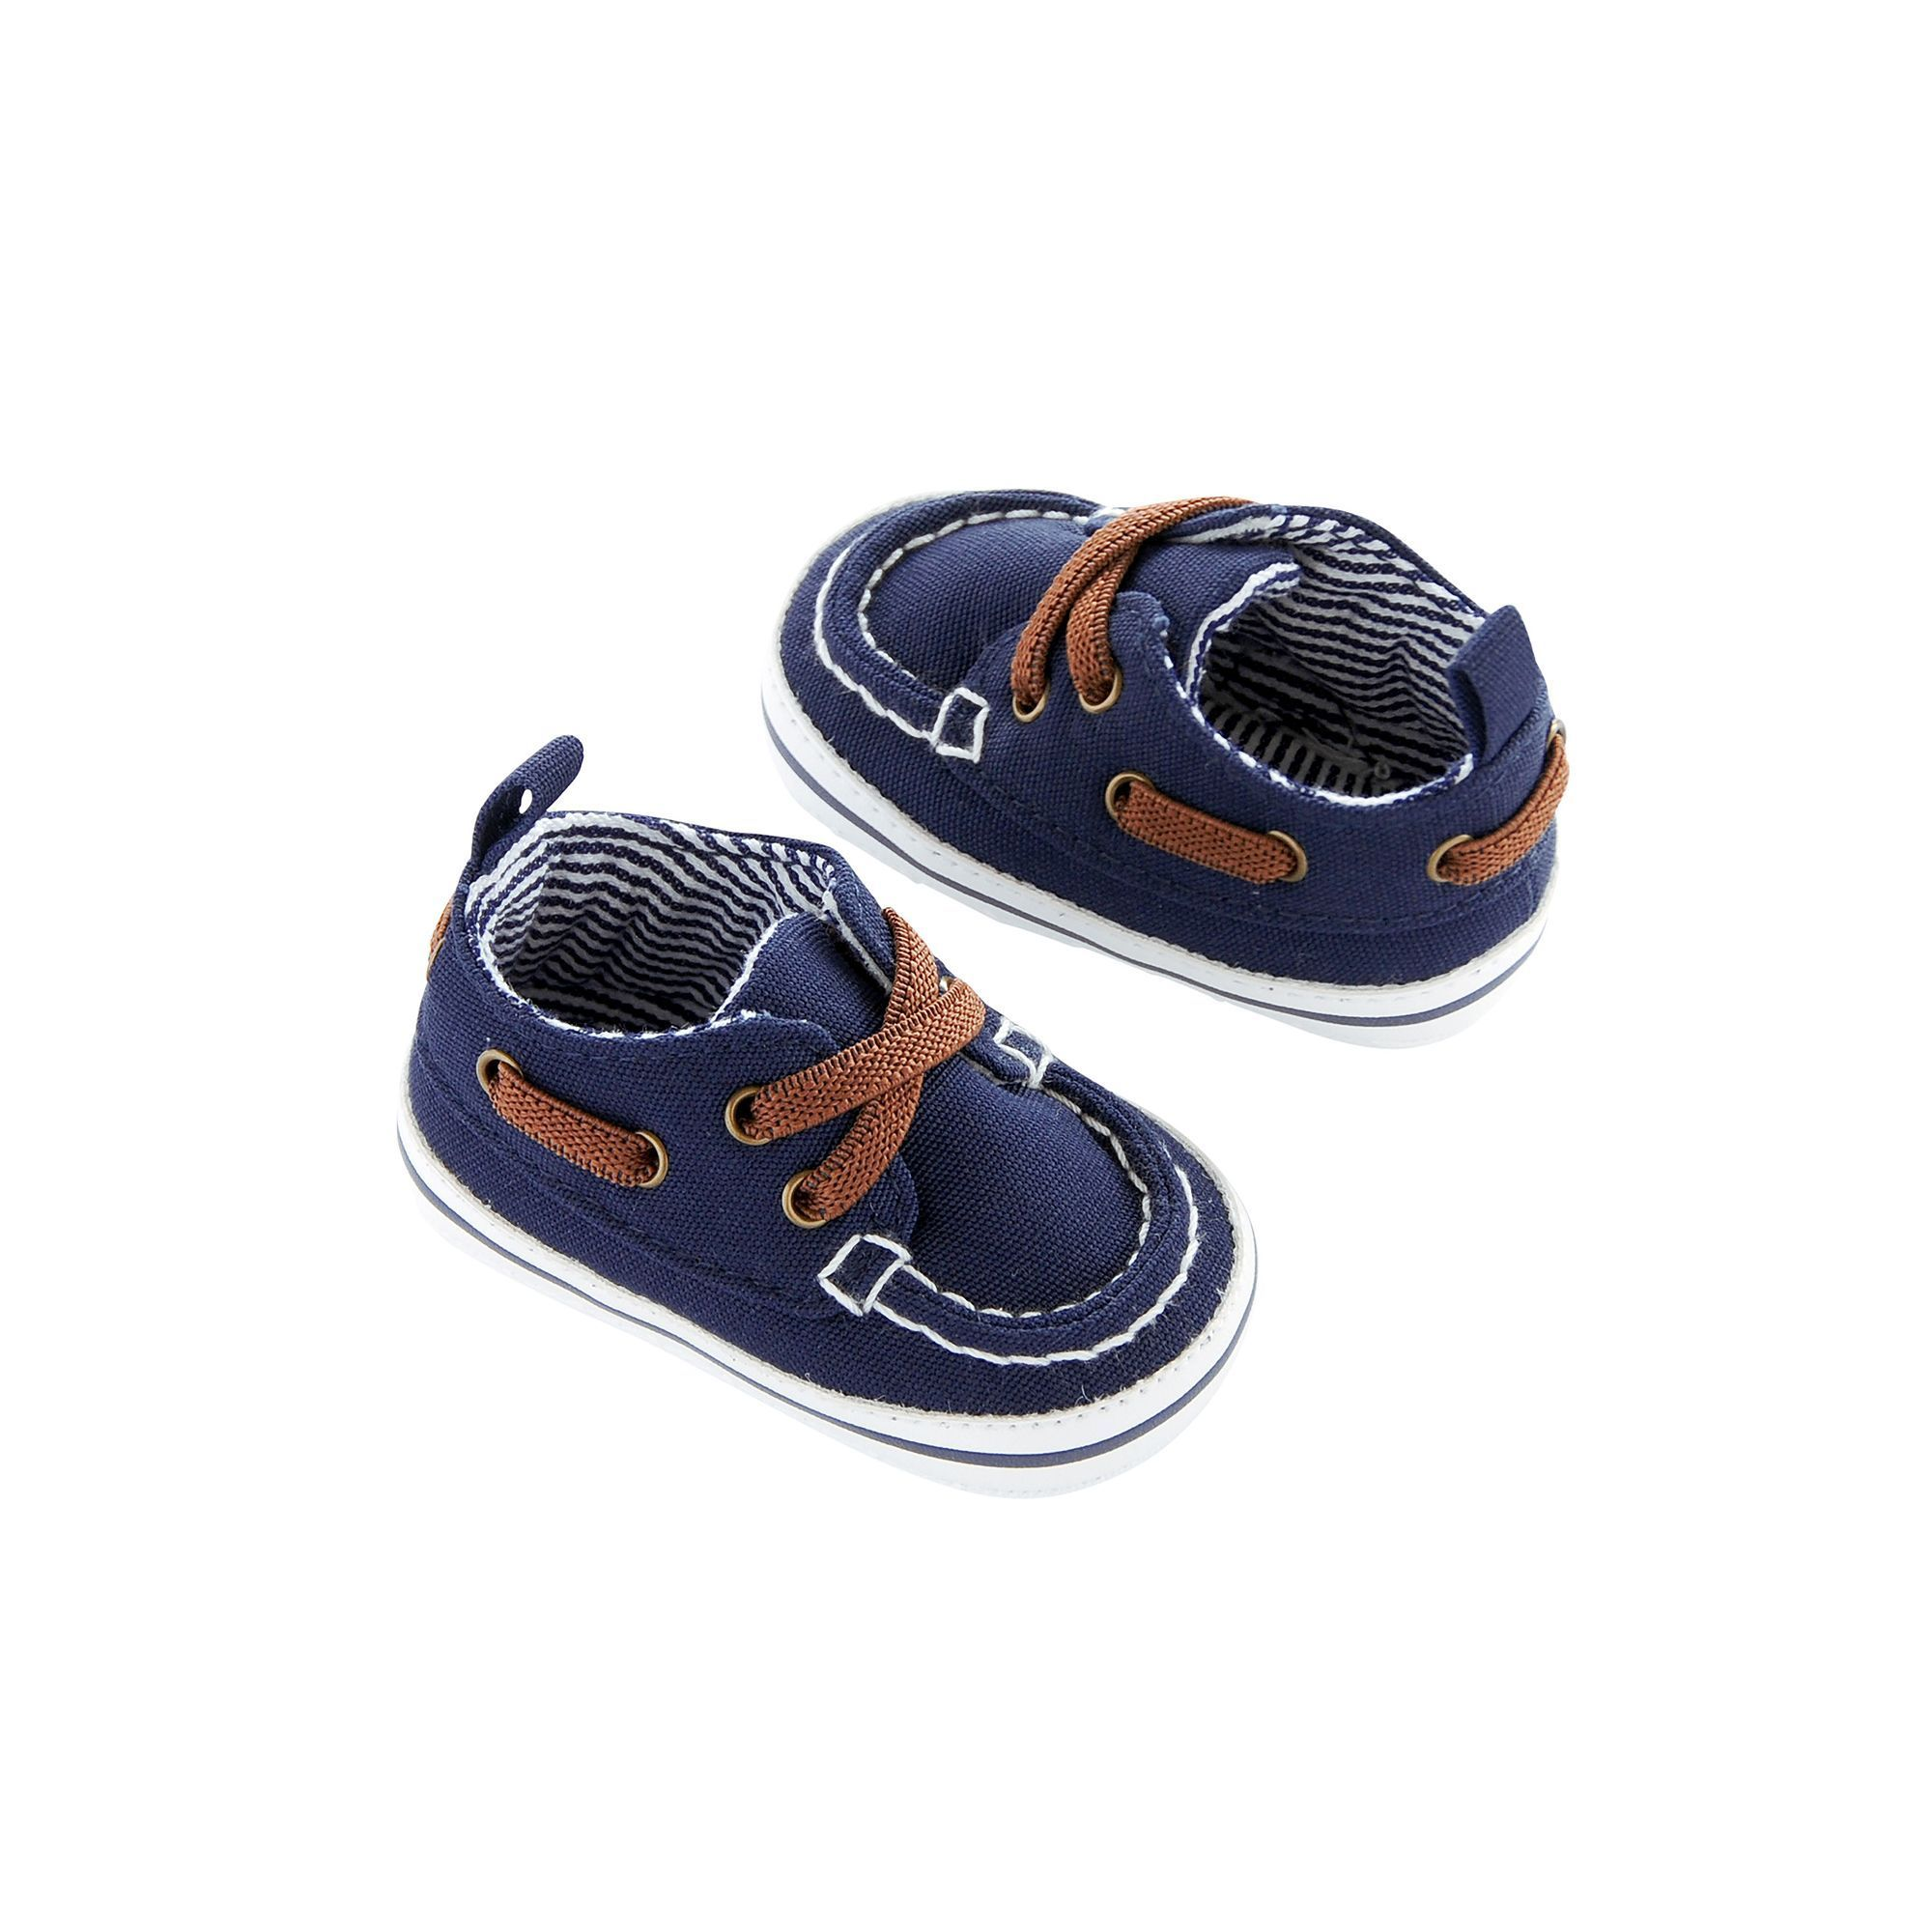 Baby Boy Carter s Boat Shoe Crib Shoes Size 6 9 Months Blue